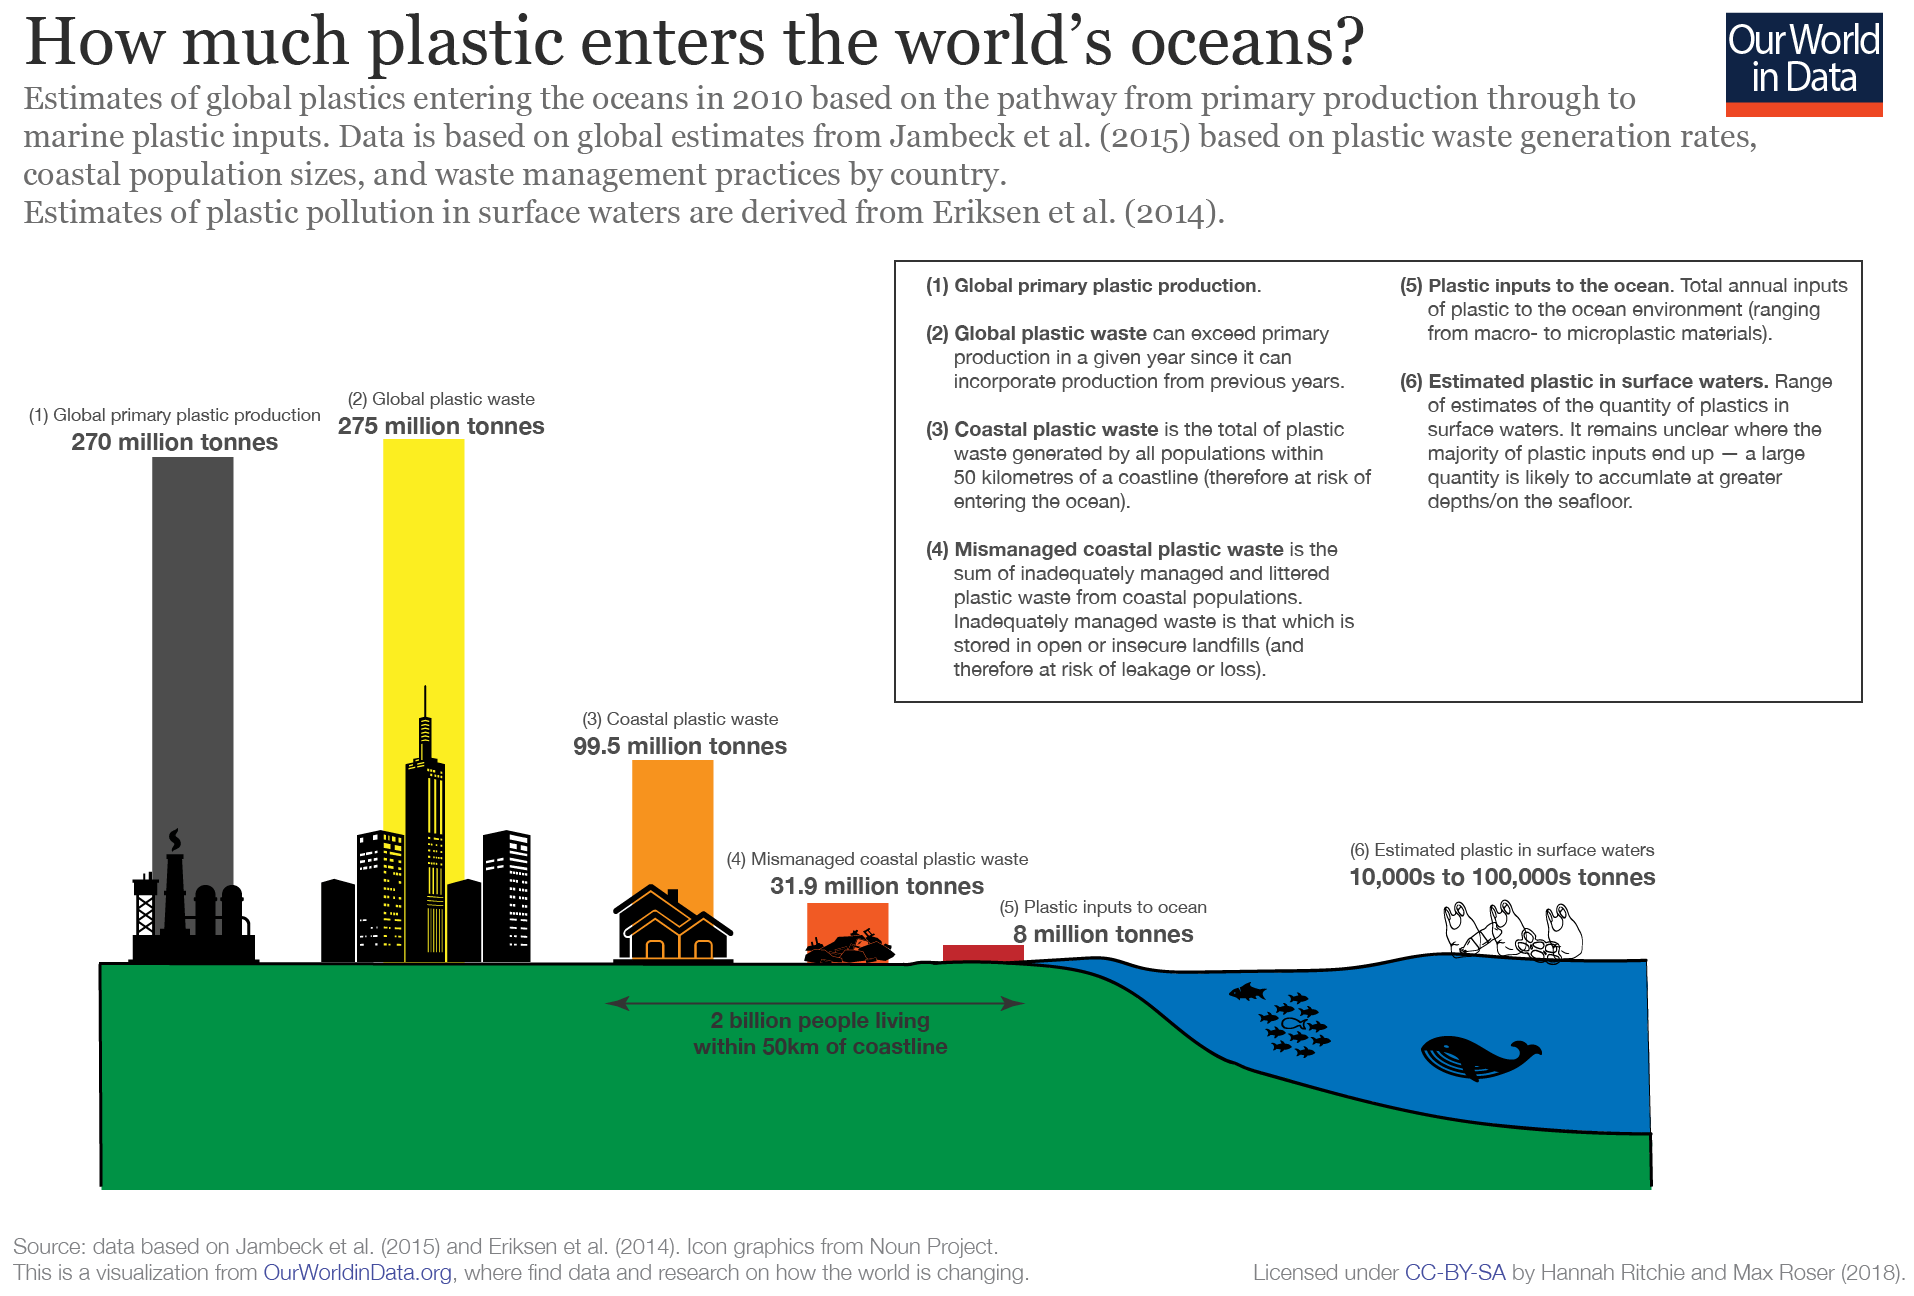 hight resolution of plastic production to ocean input